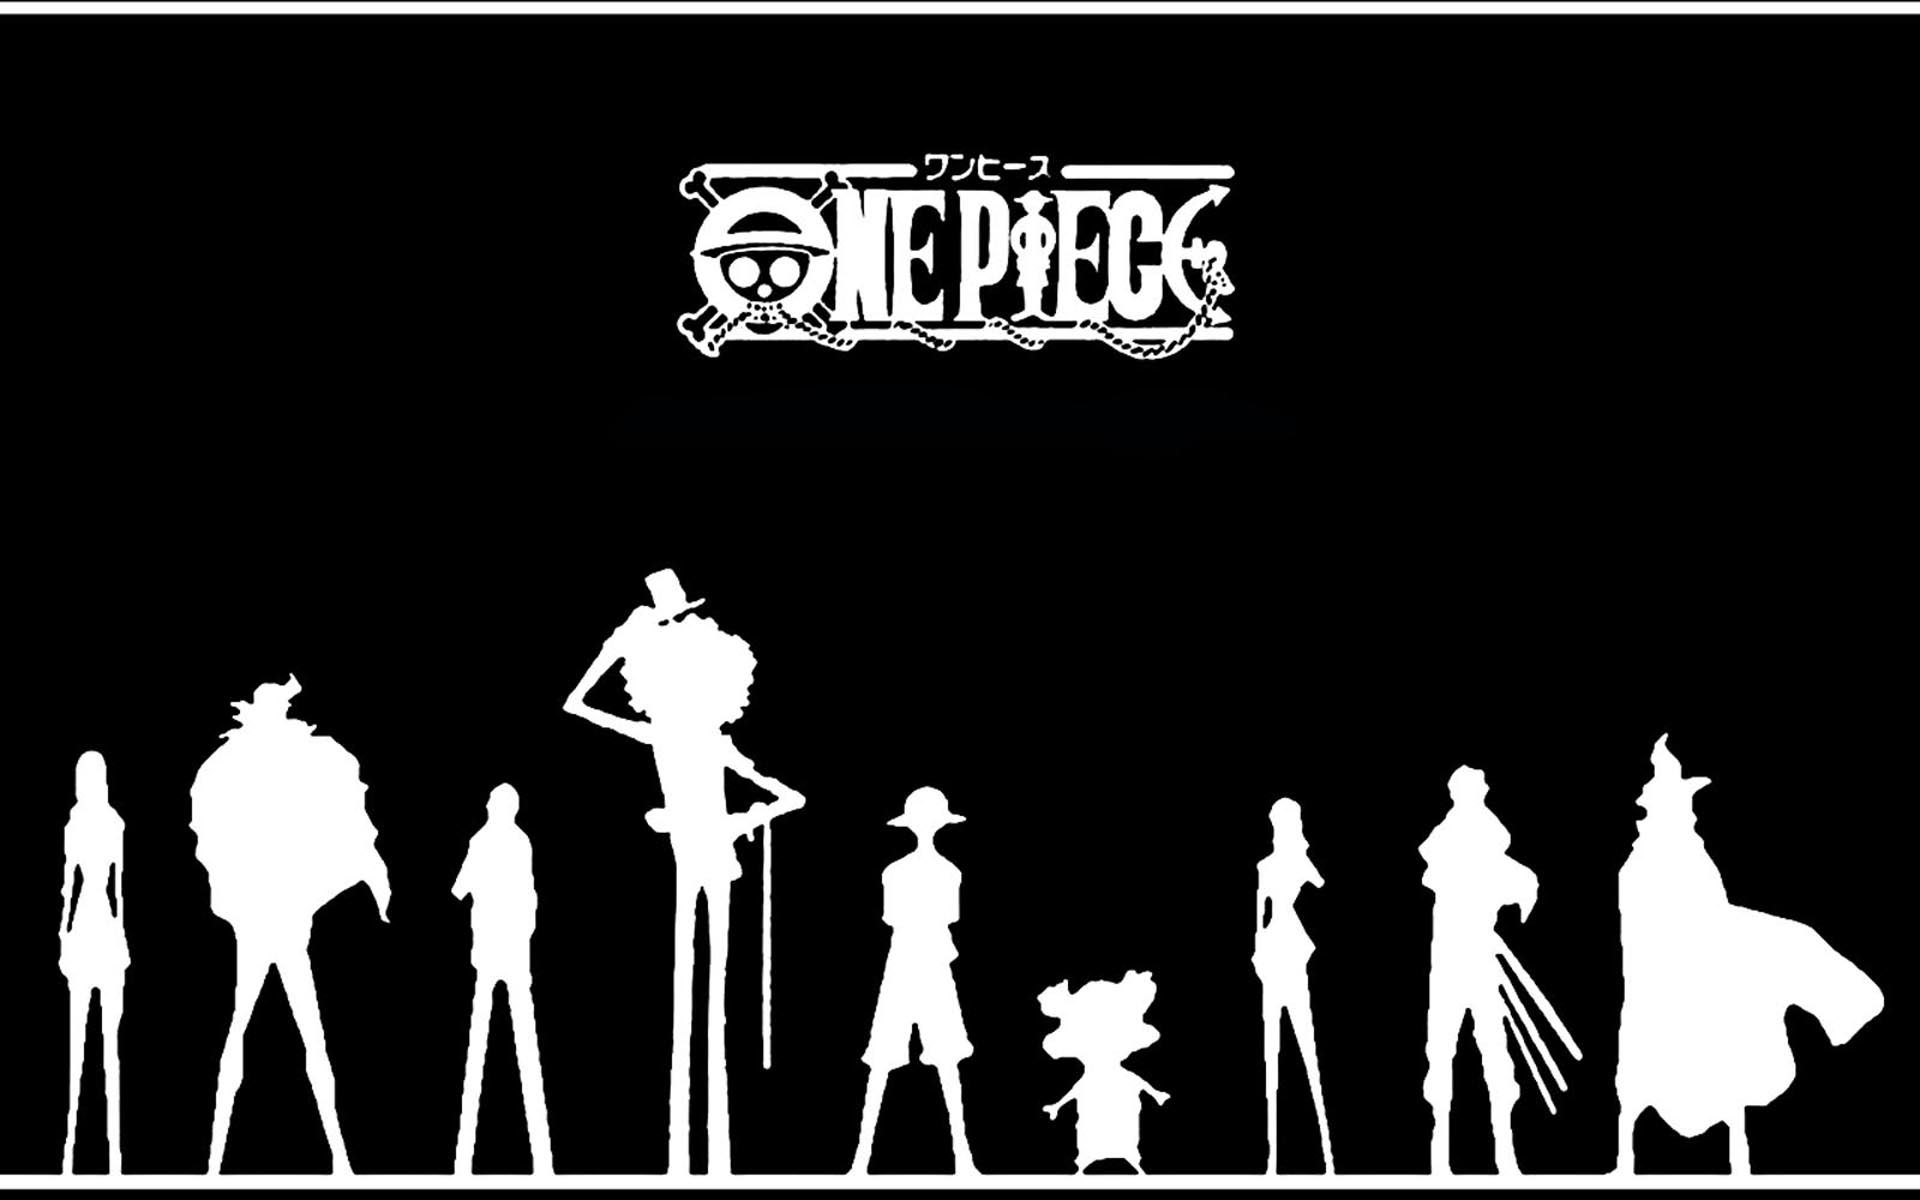 White Silhouette One Piece Character Anime Wallpaper Desktop Mobile